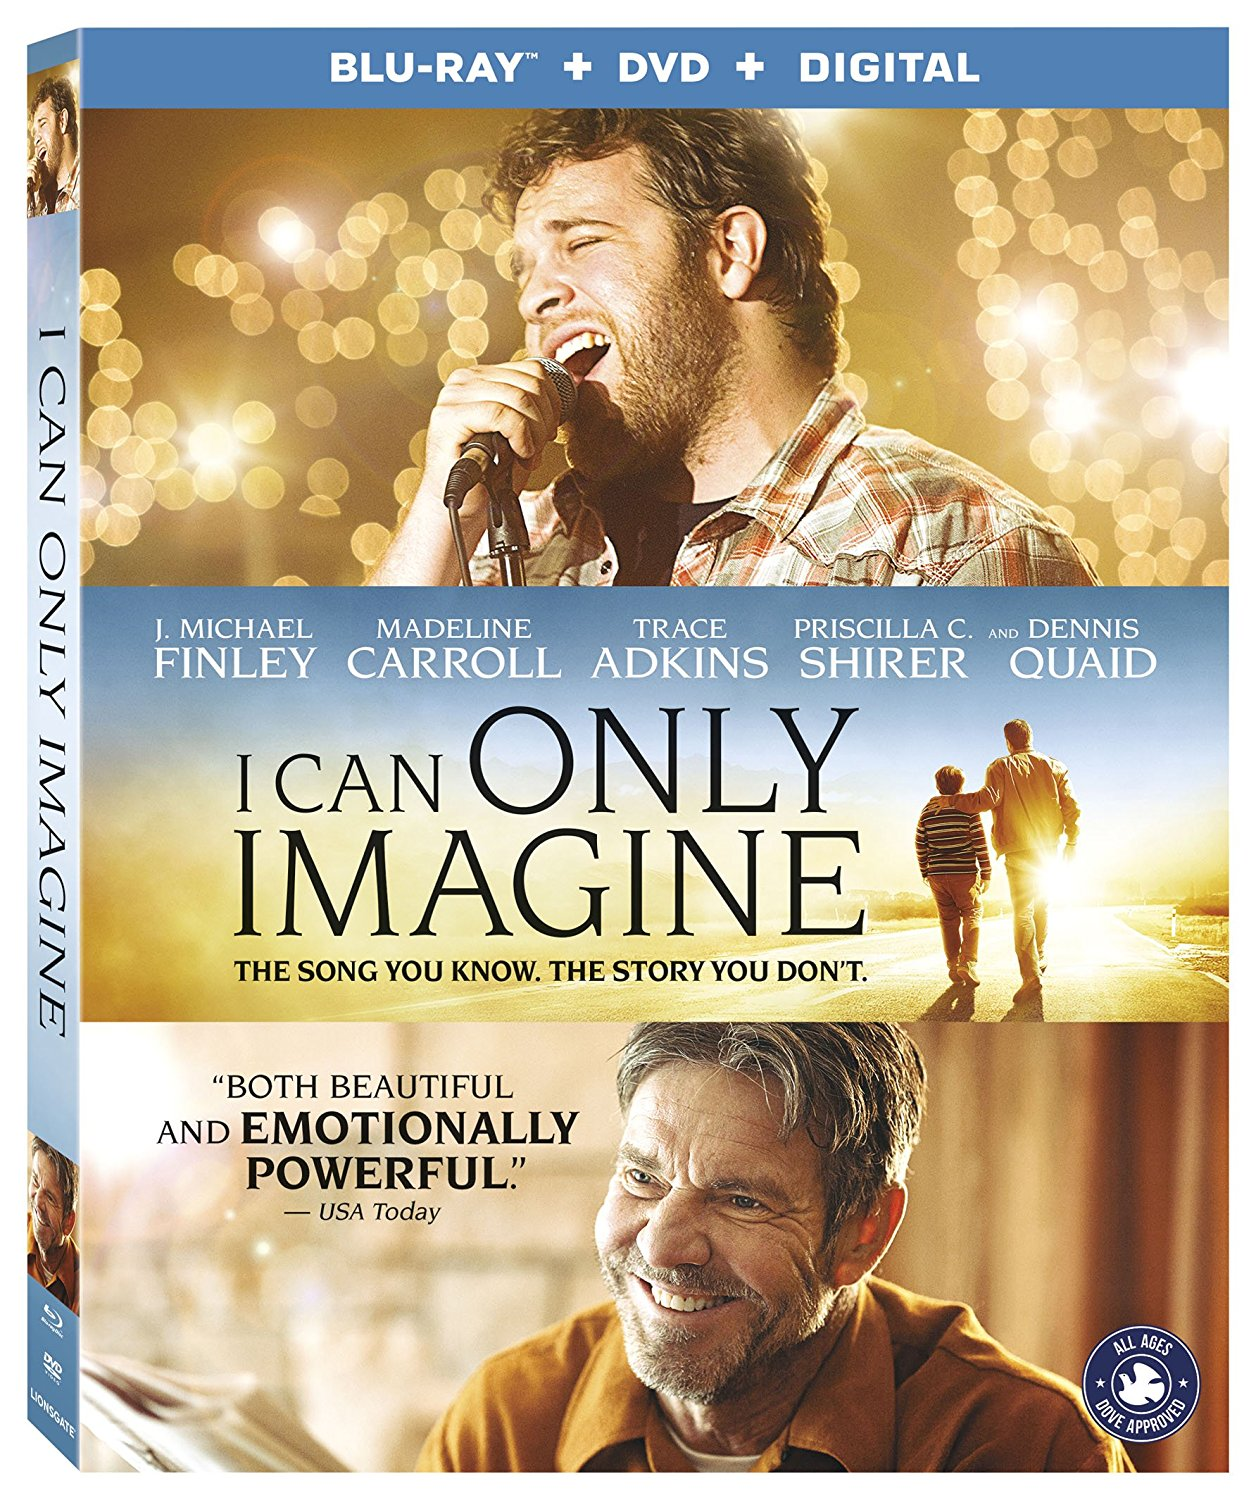 I Can Only Imagine Available in Blu-ray Combo Pack + Giveaway! #ICanOnlyImagine #FlyBy